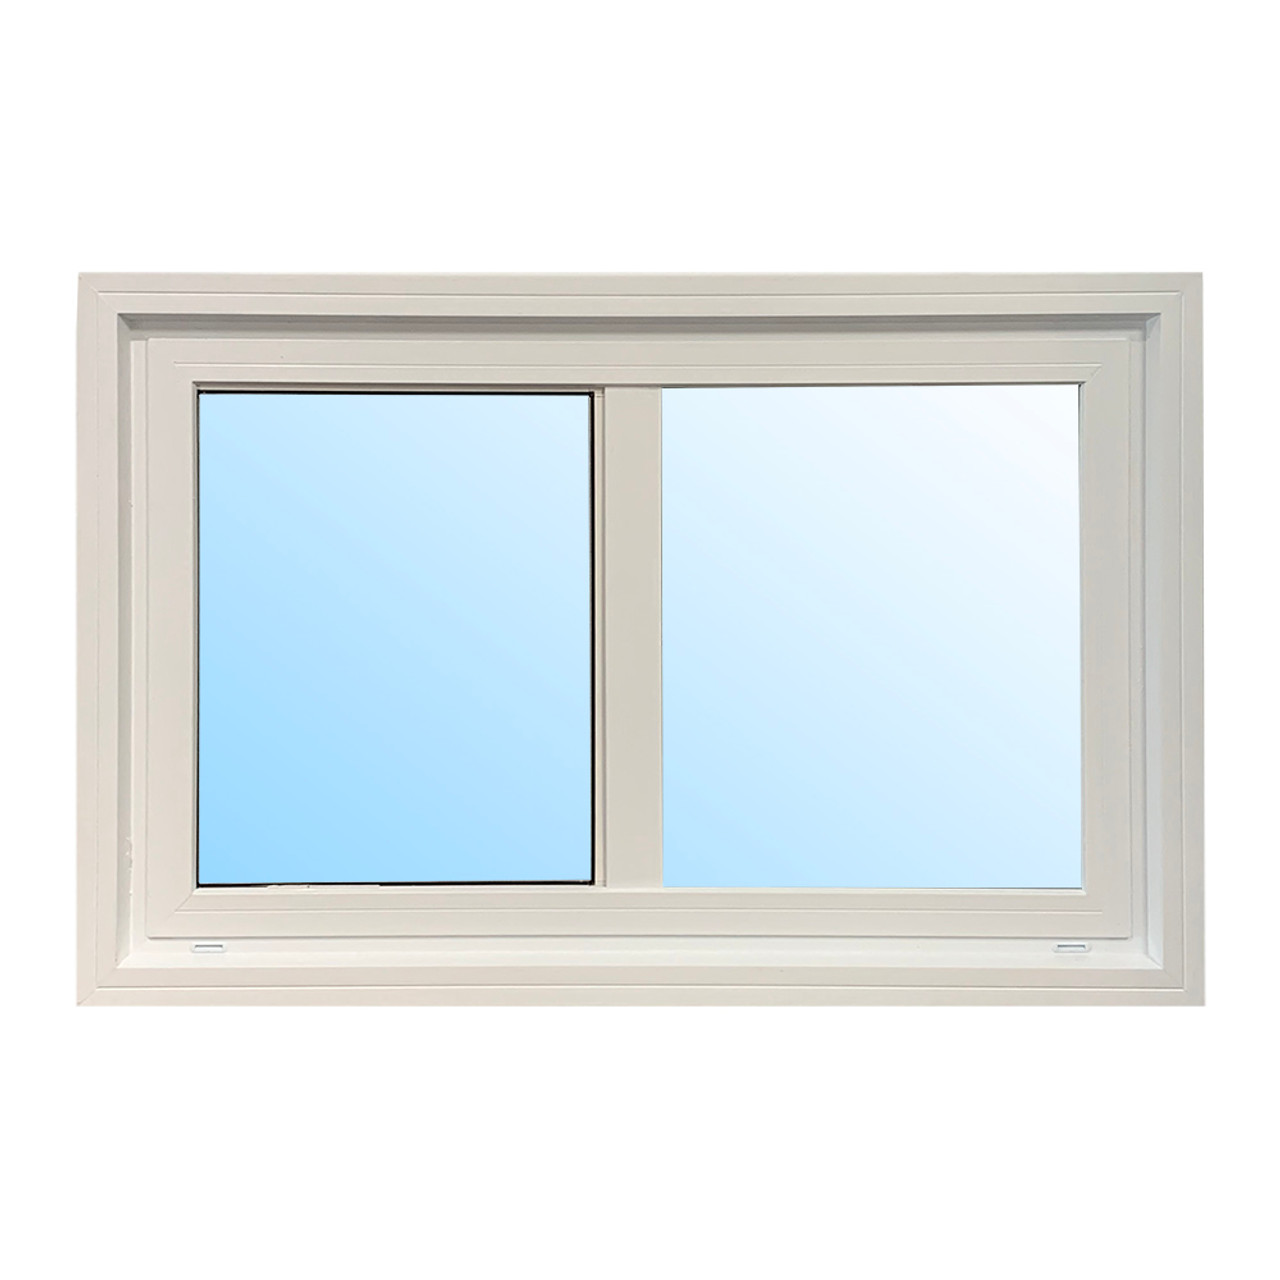 "Castlegard | 30"" x 20"" Horizontal Slider Window 